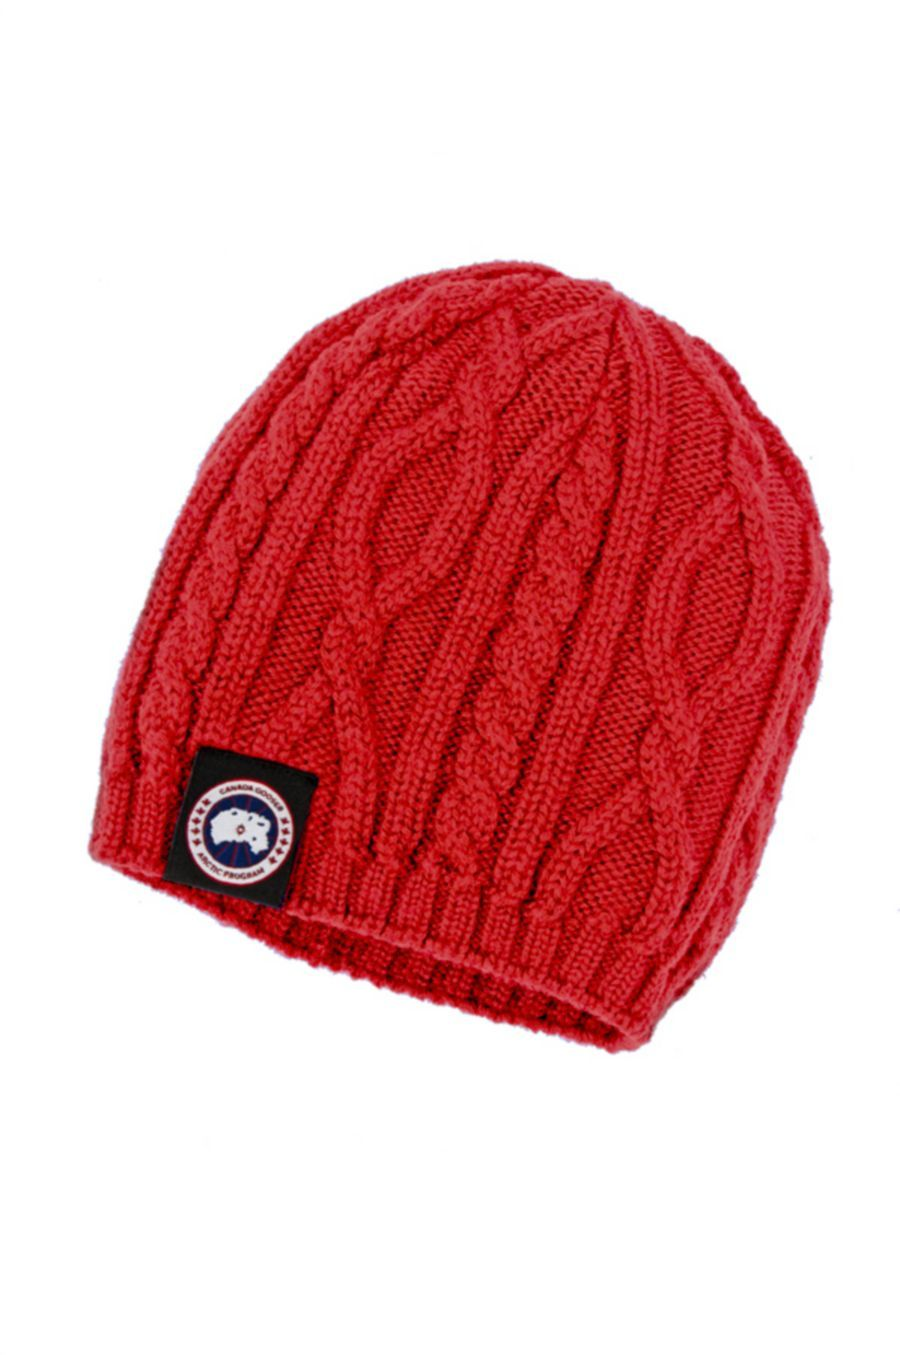 Canada Goose Cable knit beanie in red Kids clothing canada